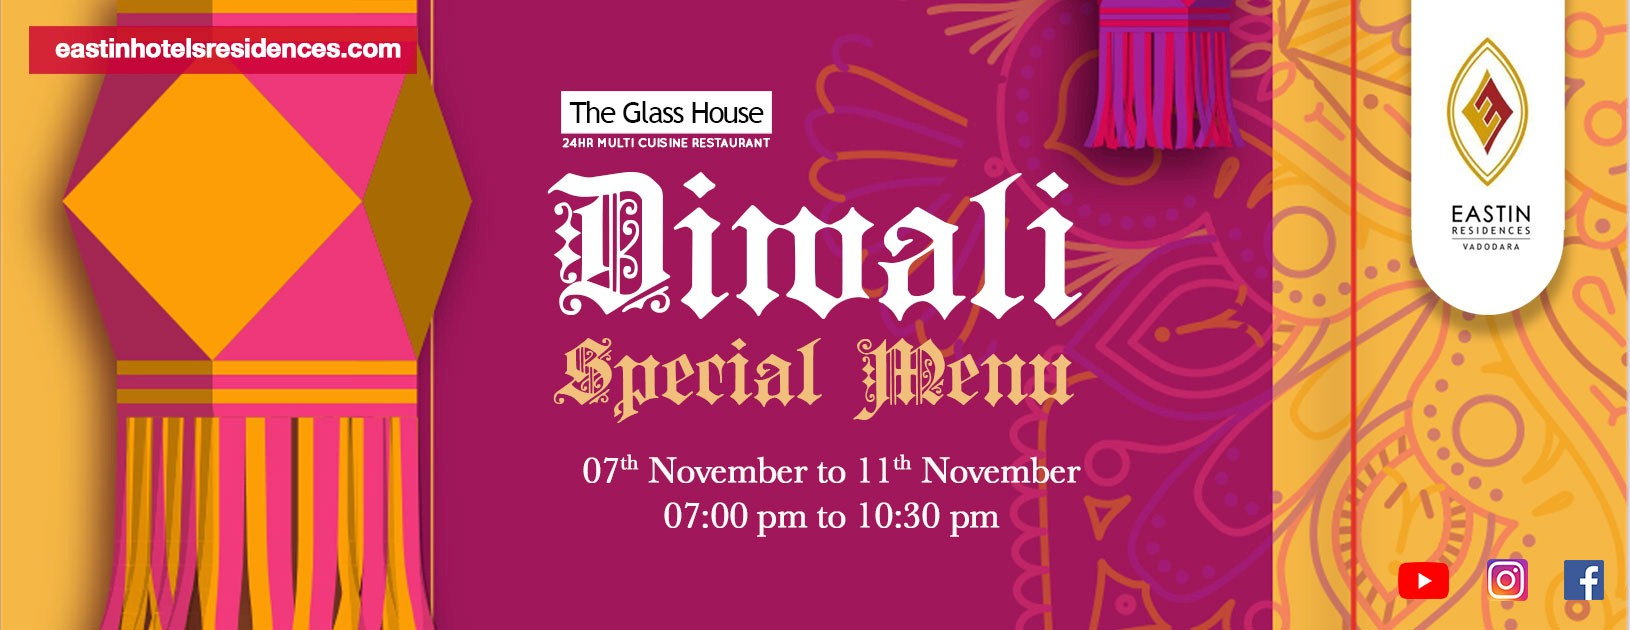 Eastin Residences Vadodara: Enjoy the vibrancy of the festive season with Indian Fusion Special menu at The Glass House – 24 Hour Multi Cuisine Restaurant